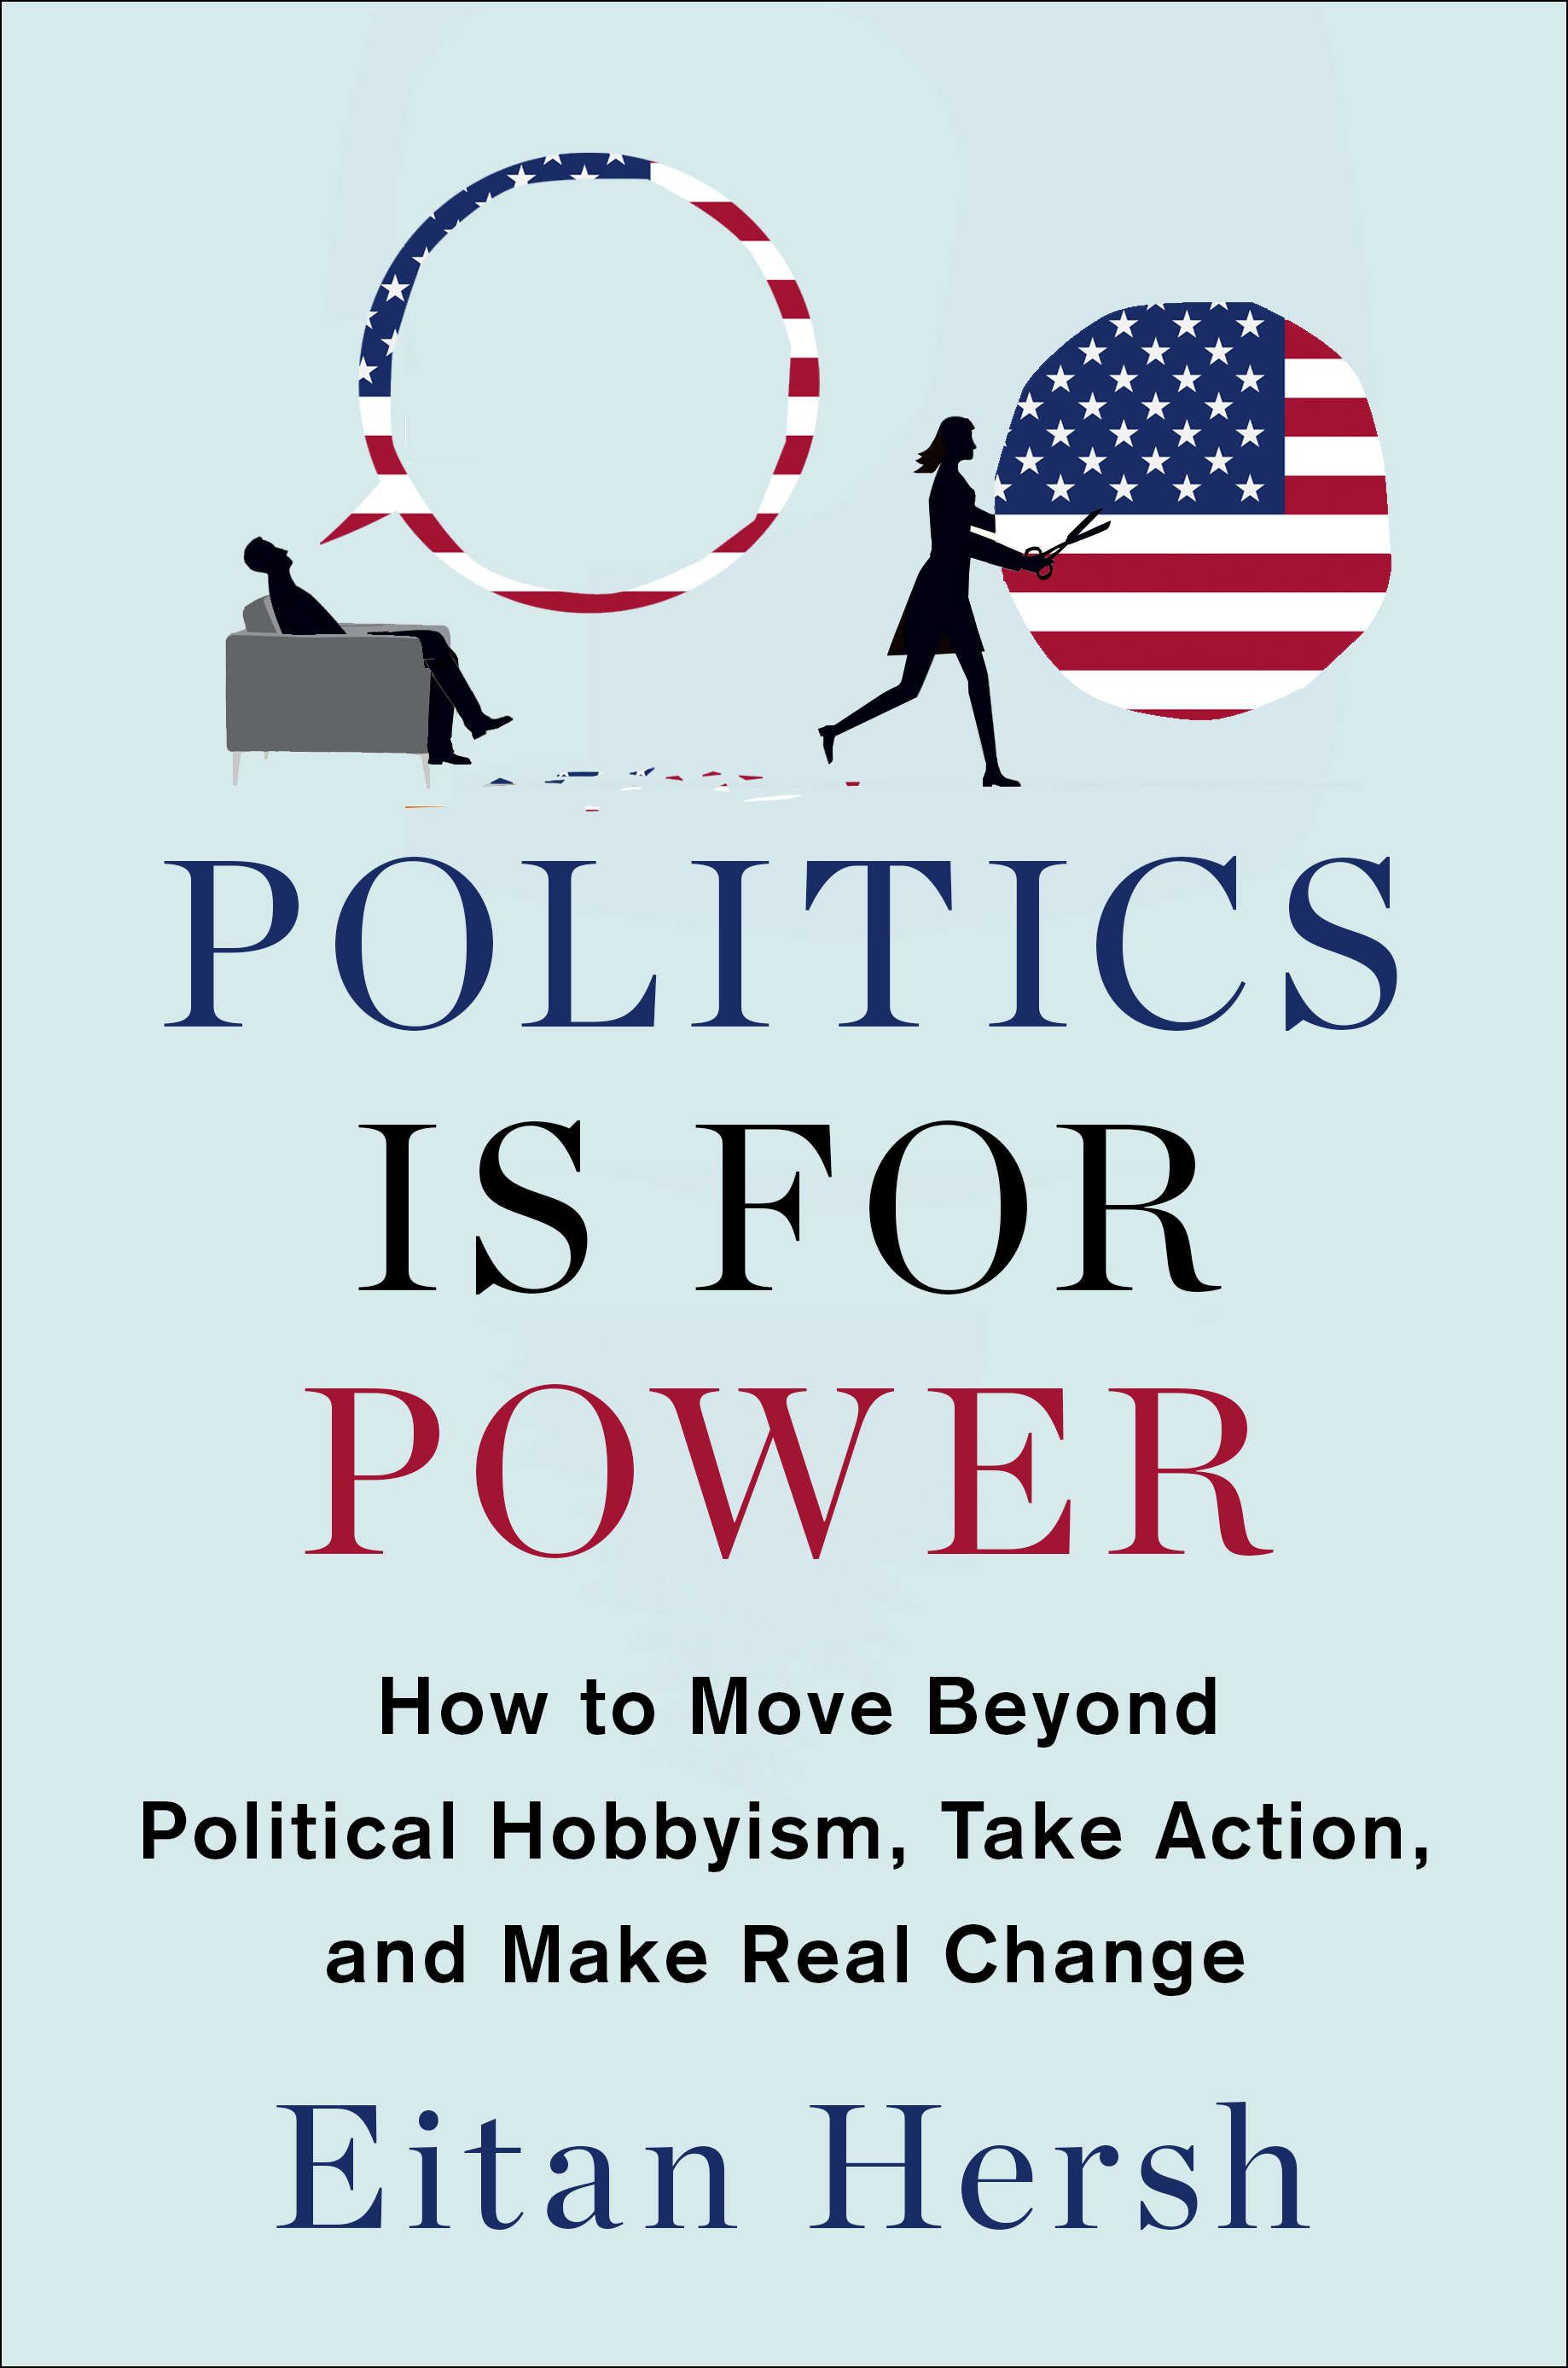 Book Launch: Politics Is For Power by Eitan Hersh